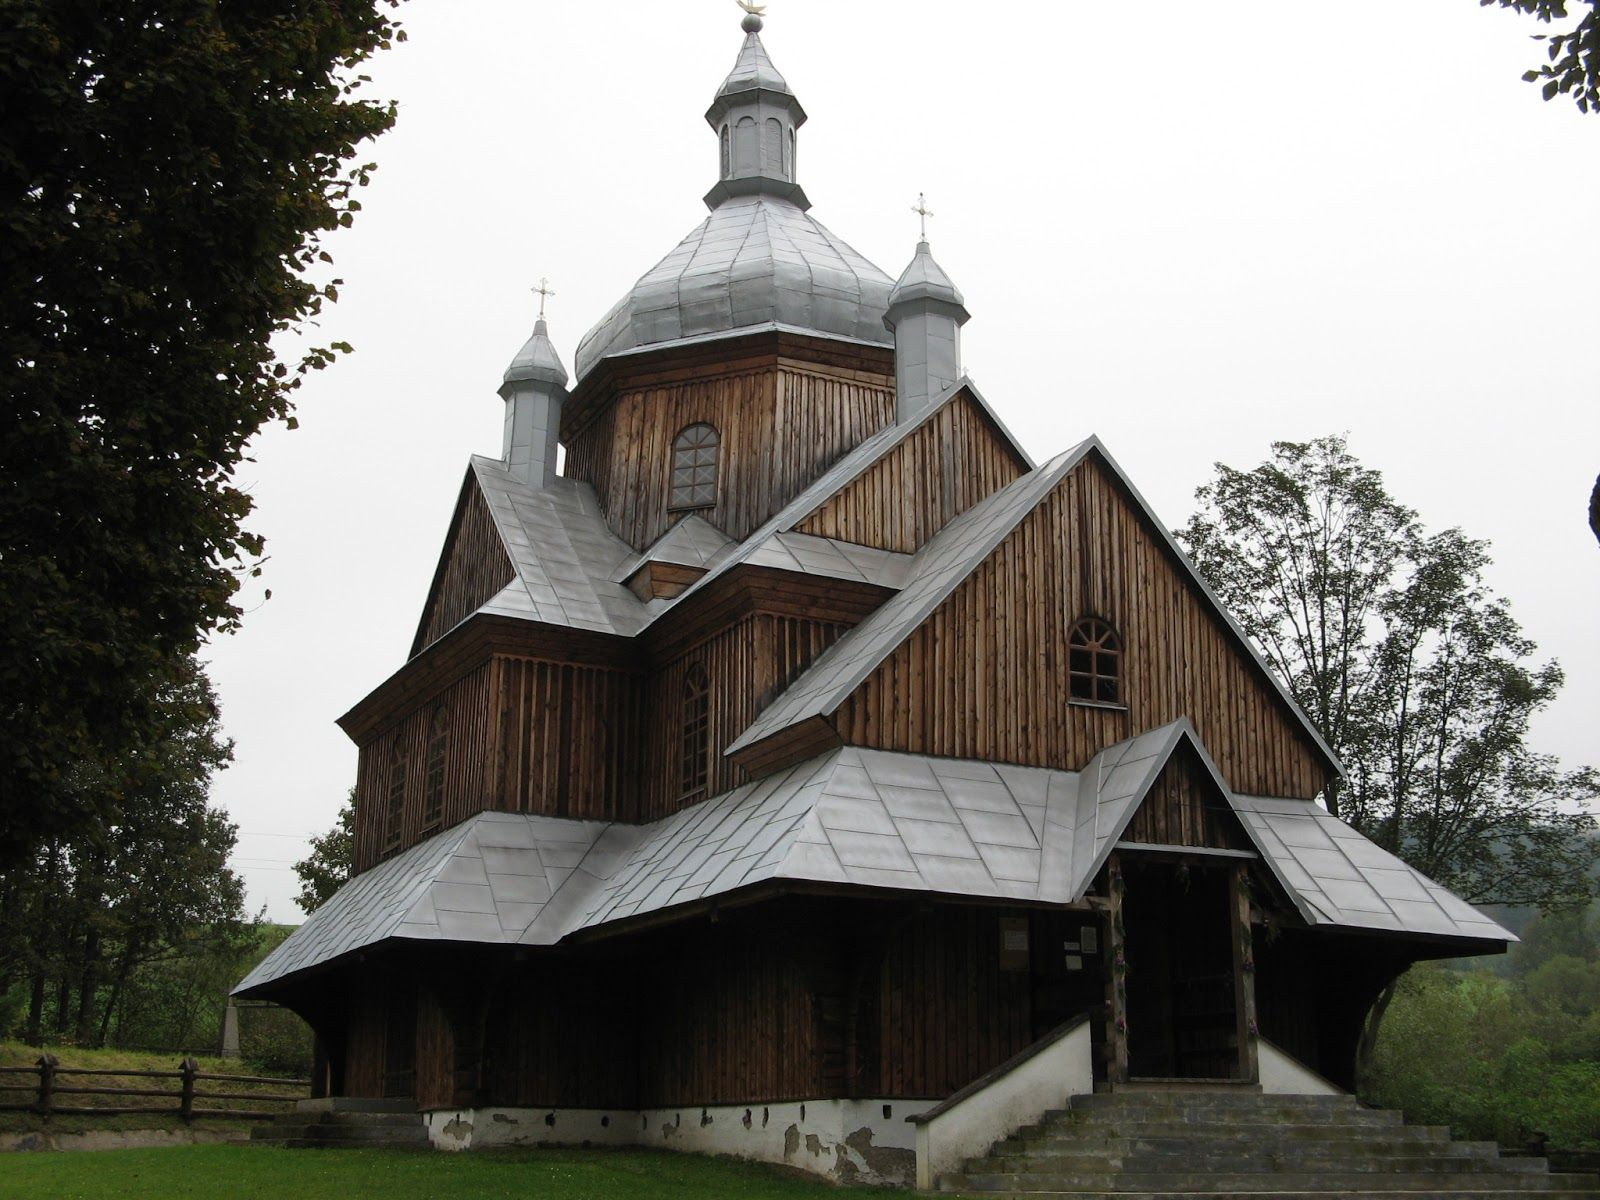 Wooden Churches And Folk Architecture Of Central Eastern Europe